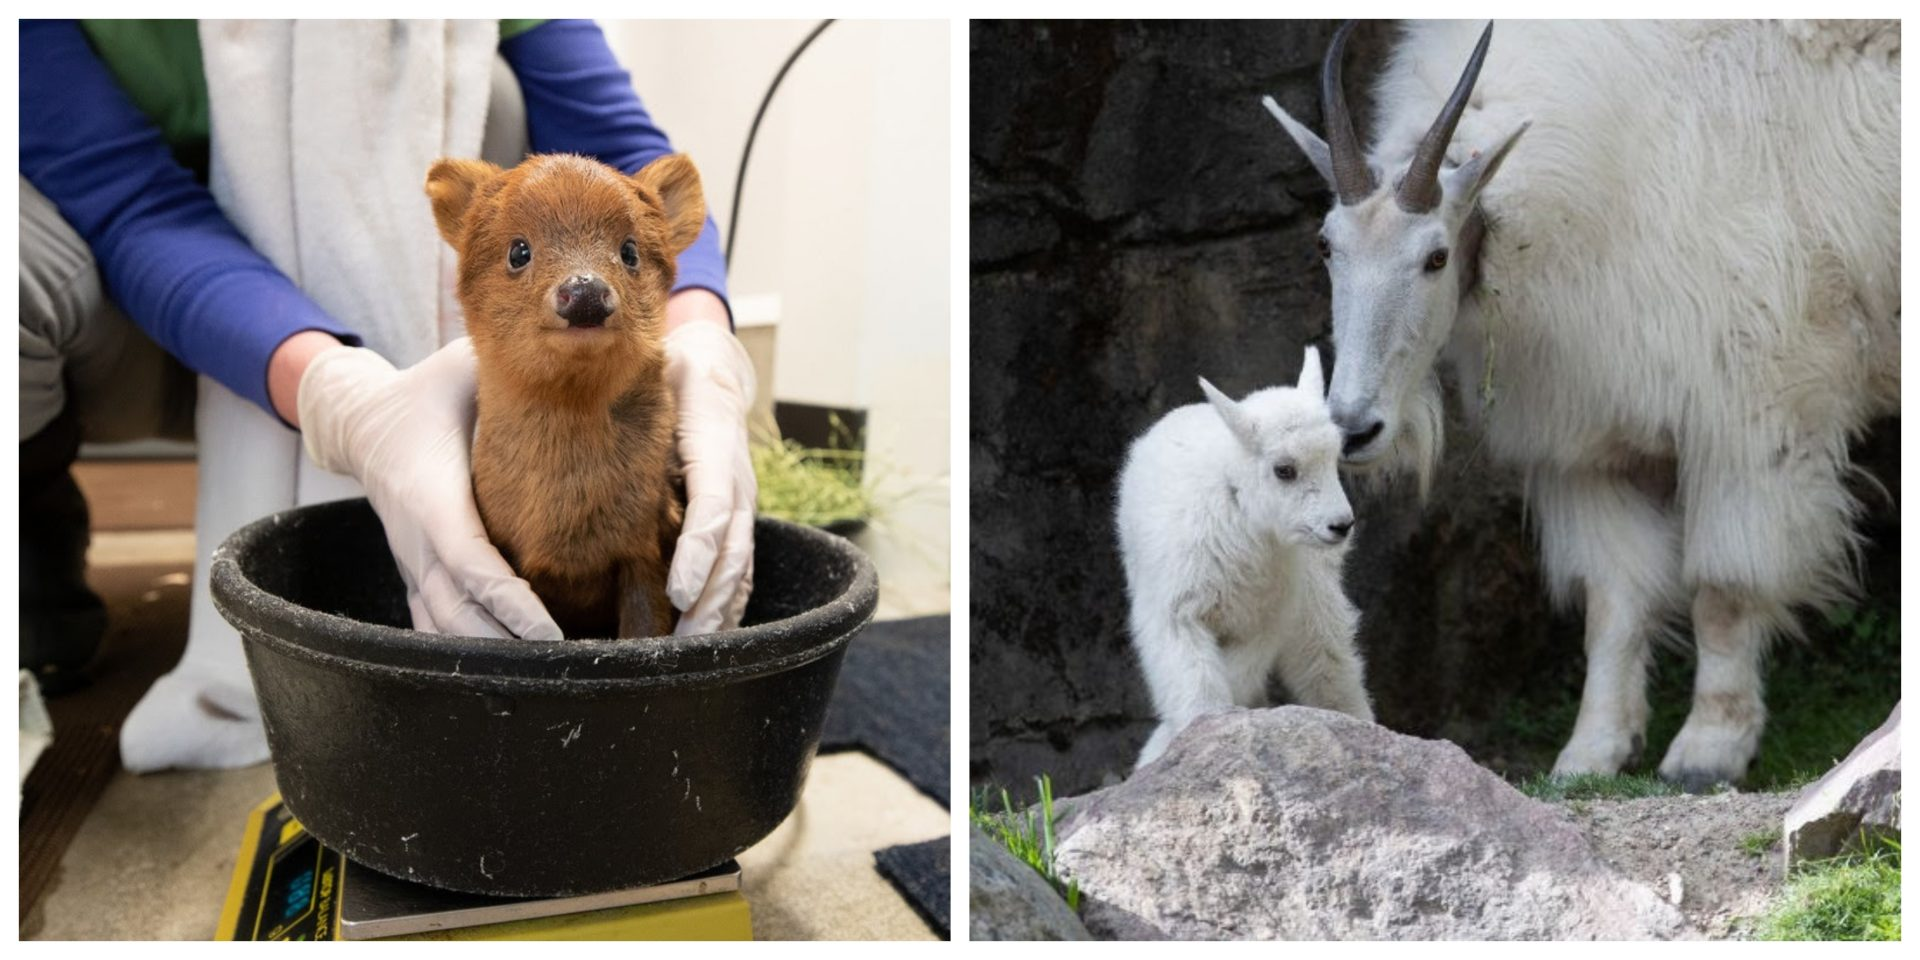 Woodland Park Zoo welcomes new baby fawn and mountain goat